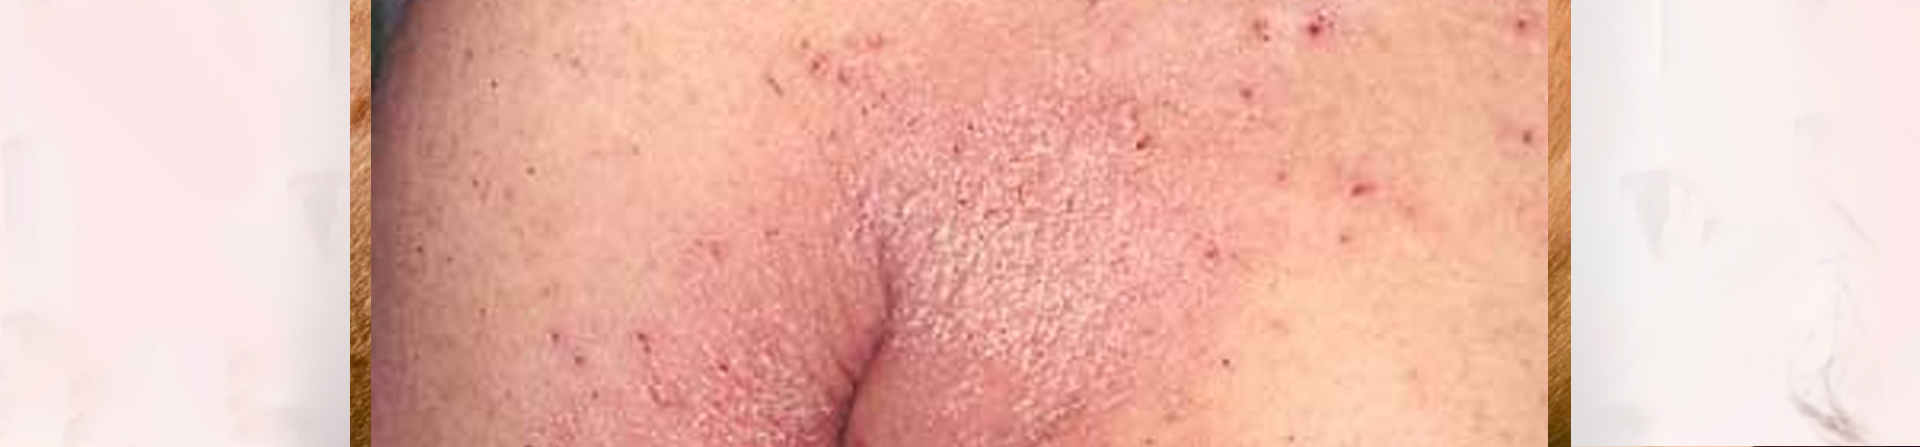 Best Scabies Treatment Clinic in Bhubaneswar